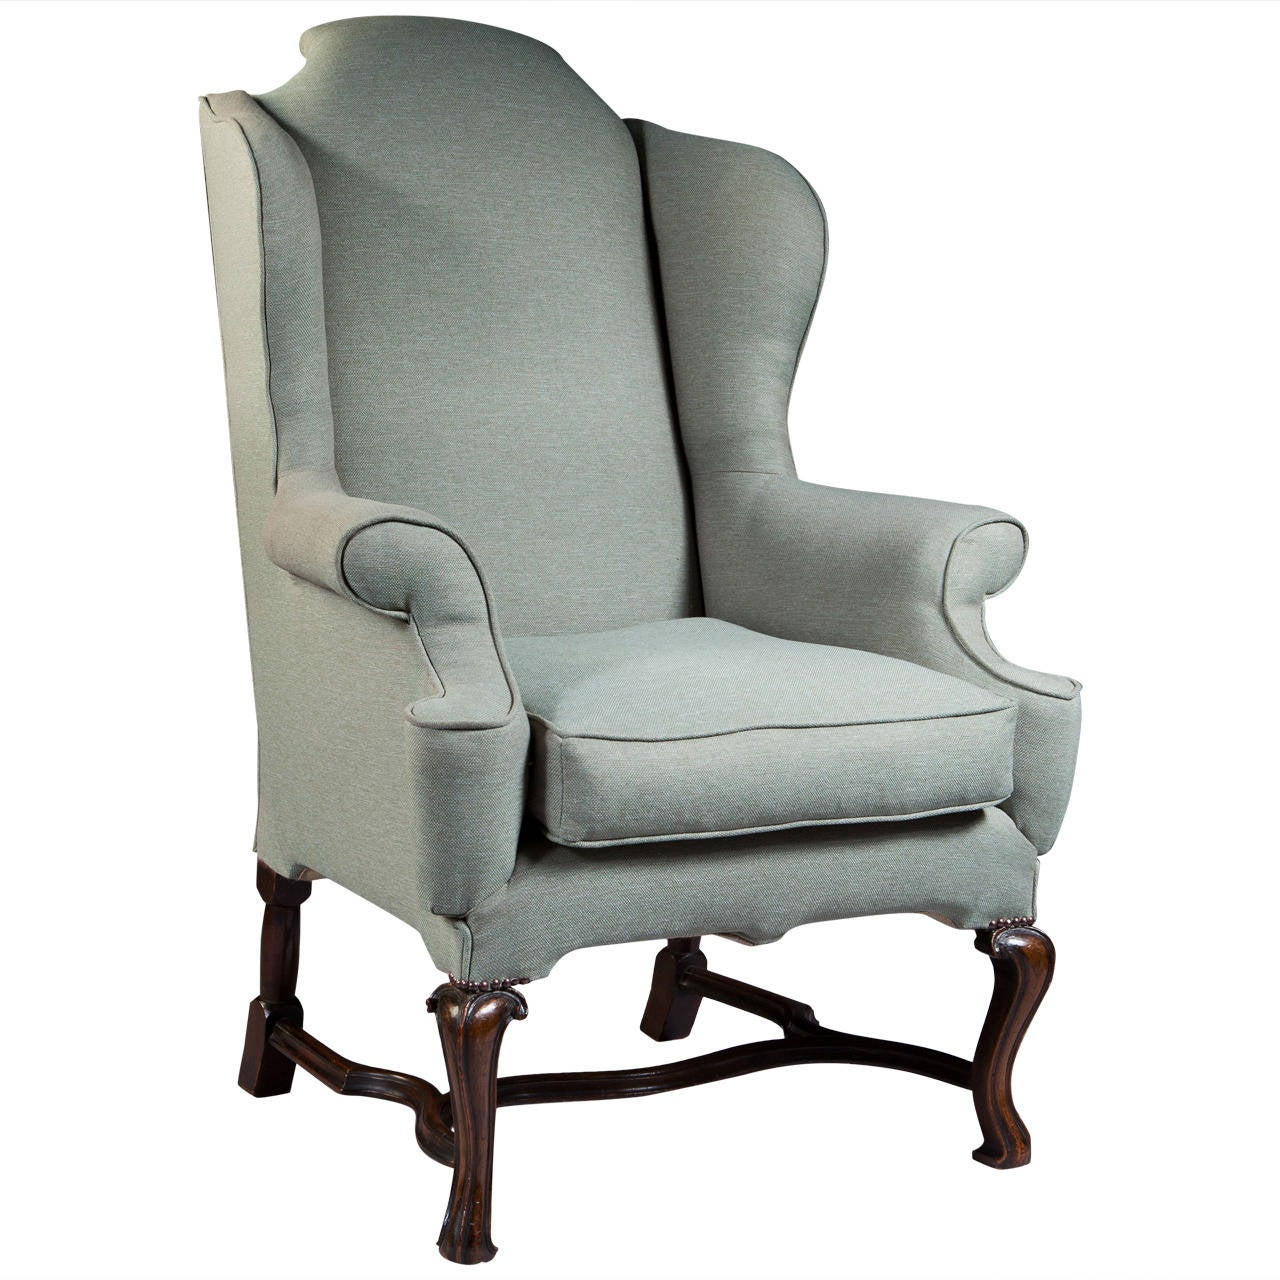 George I Style Large-Scale Wing Chair